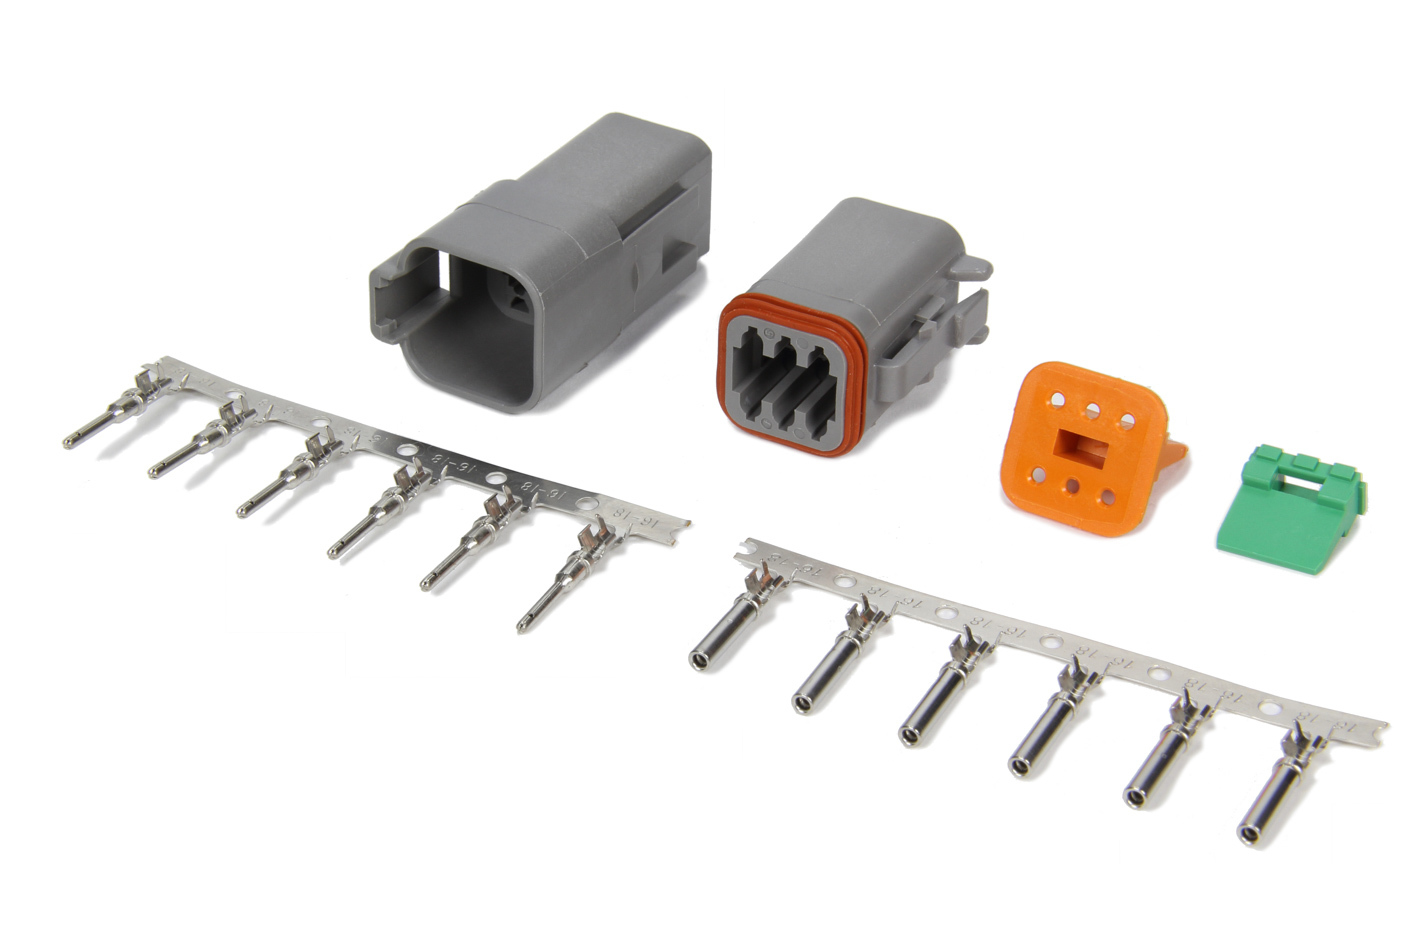 MSD Ignition 8180 Electrical Connector, Deutsch Connector, 6 Pin, 16 Gauge, Kit